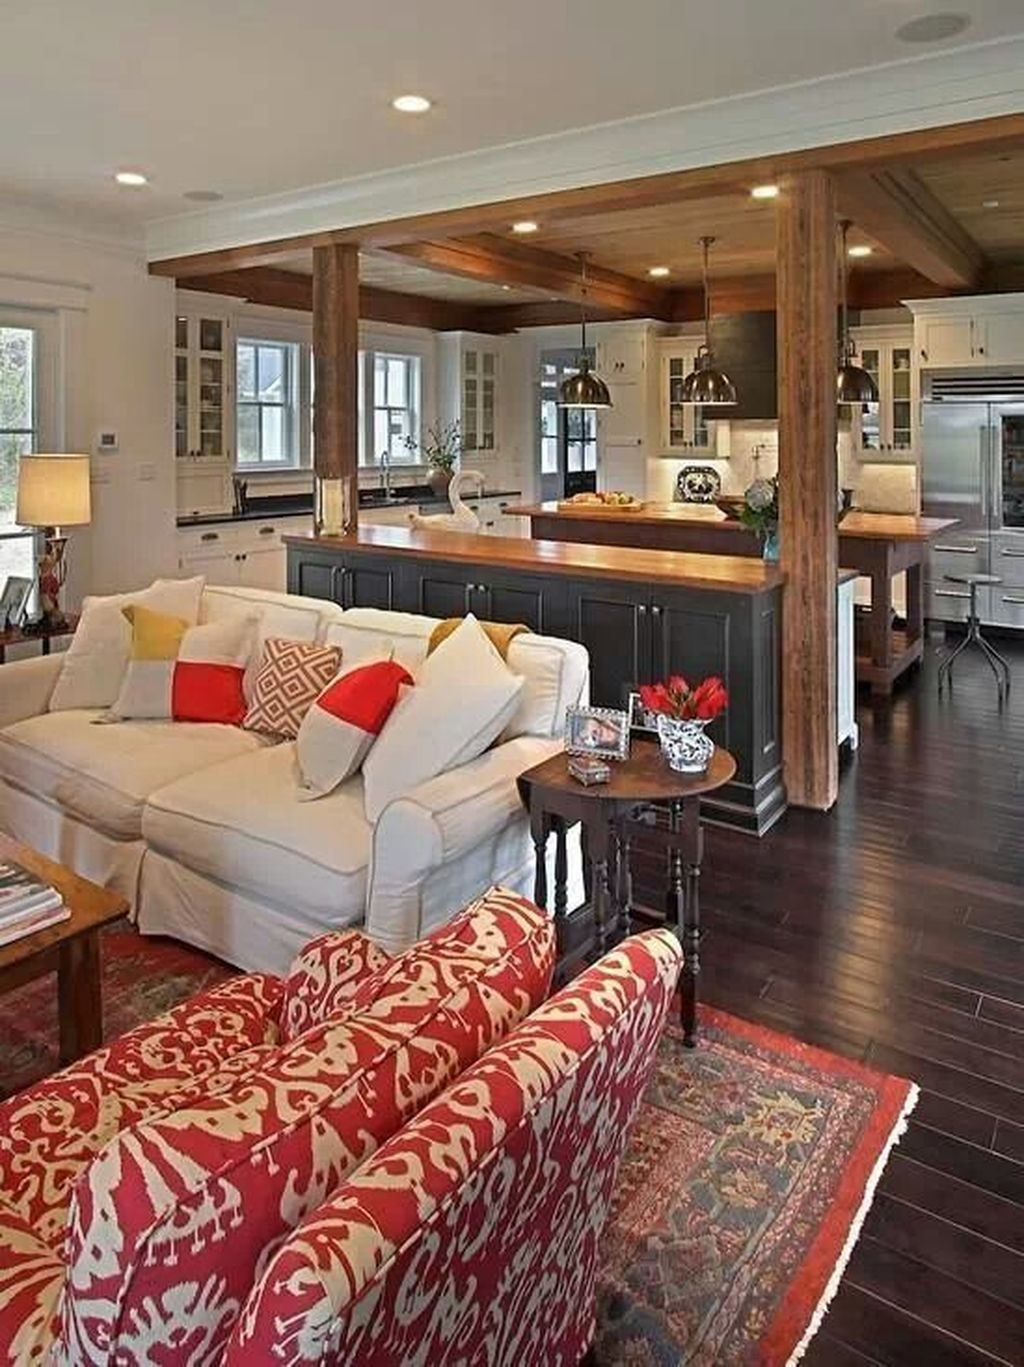 20 Stunning Open Concept Modern Floor Plans Ideas Trendhmdcr Craftsman Living Rooms Living Room And Kitchen Design Contemporary Living Room Design